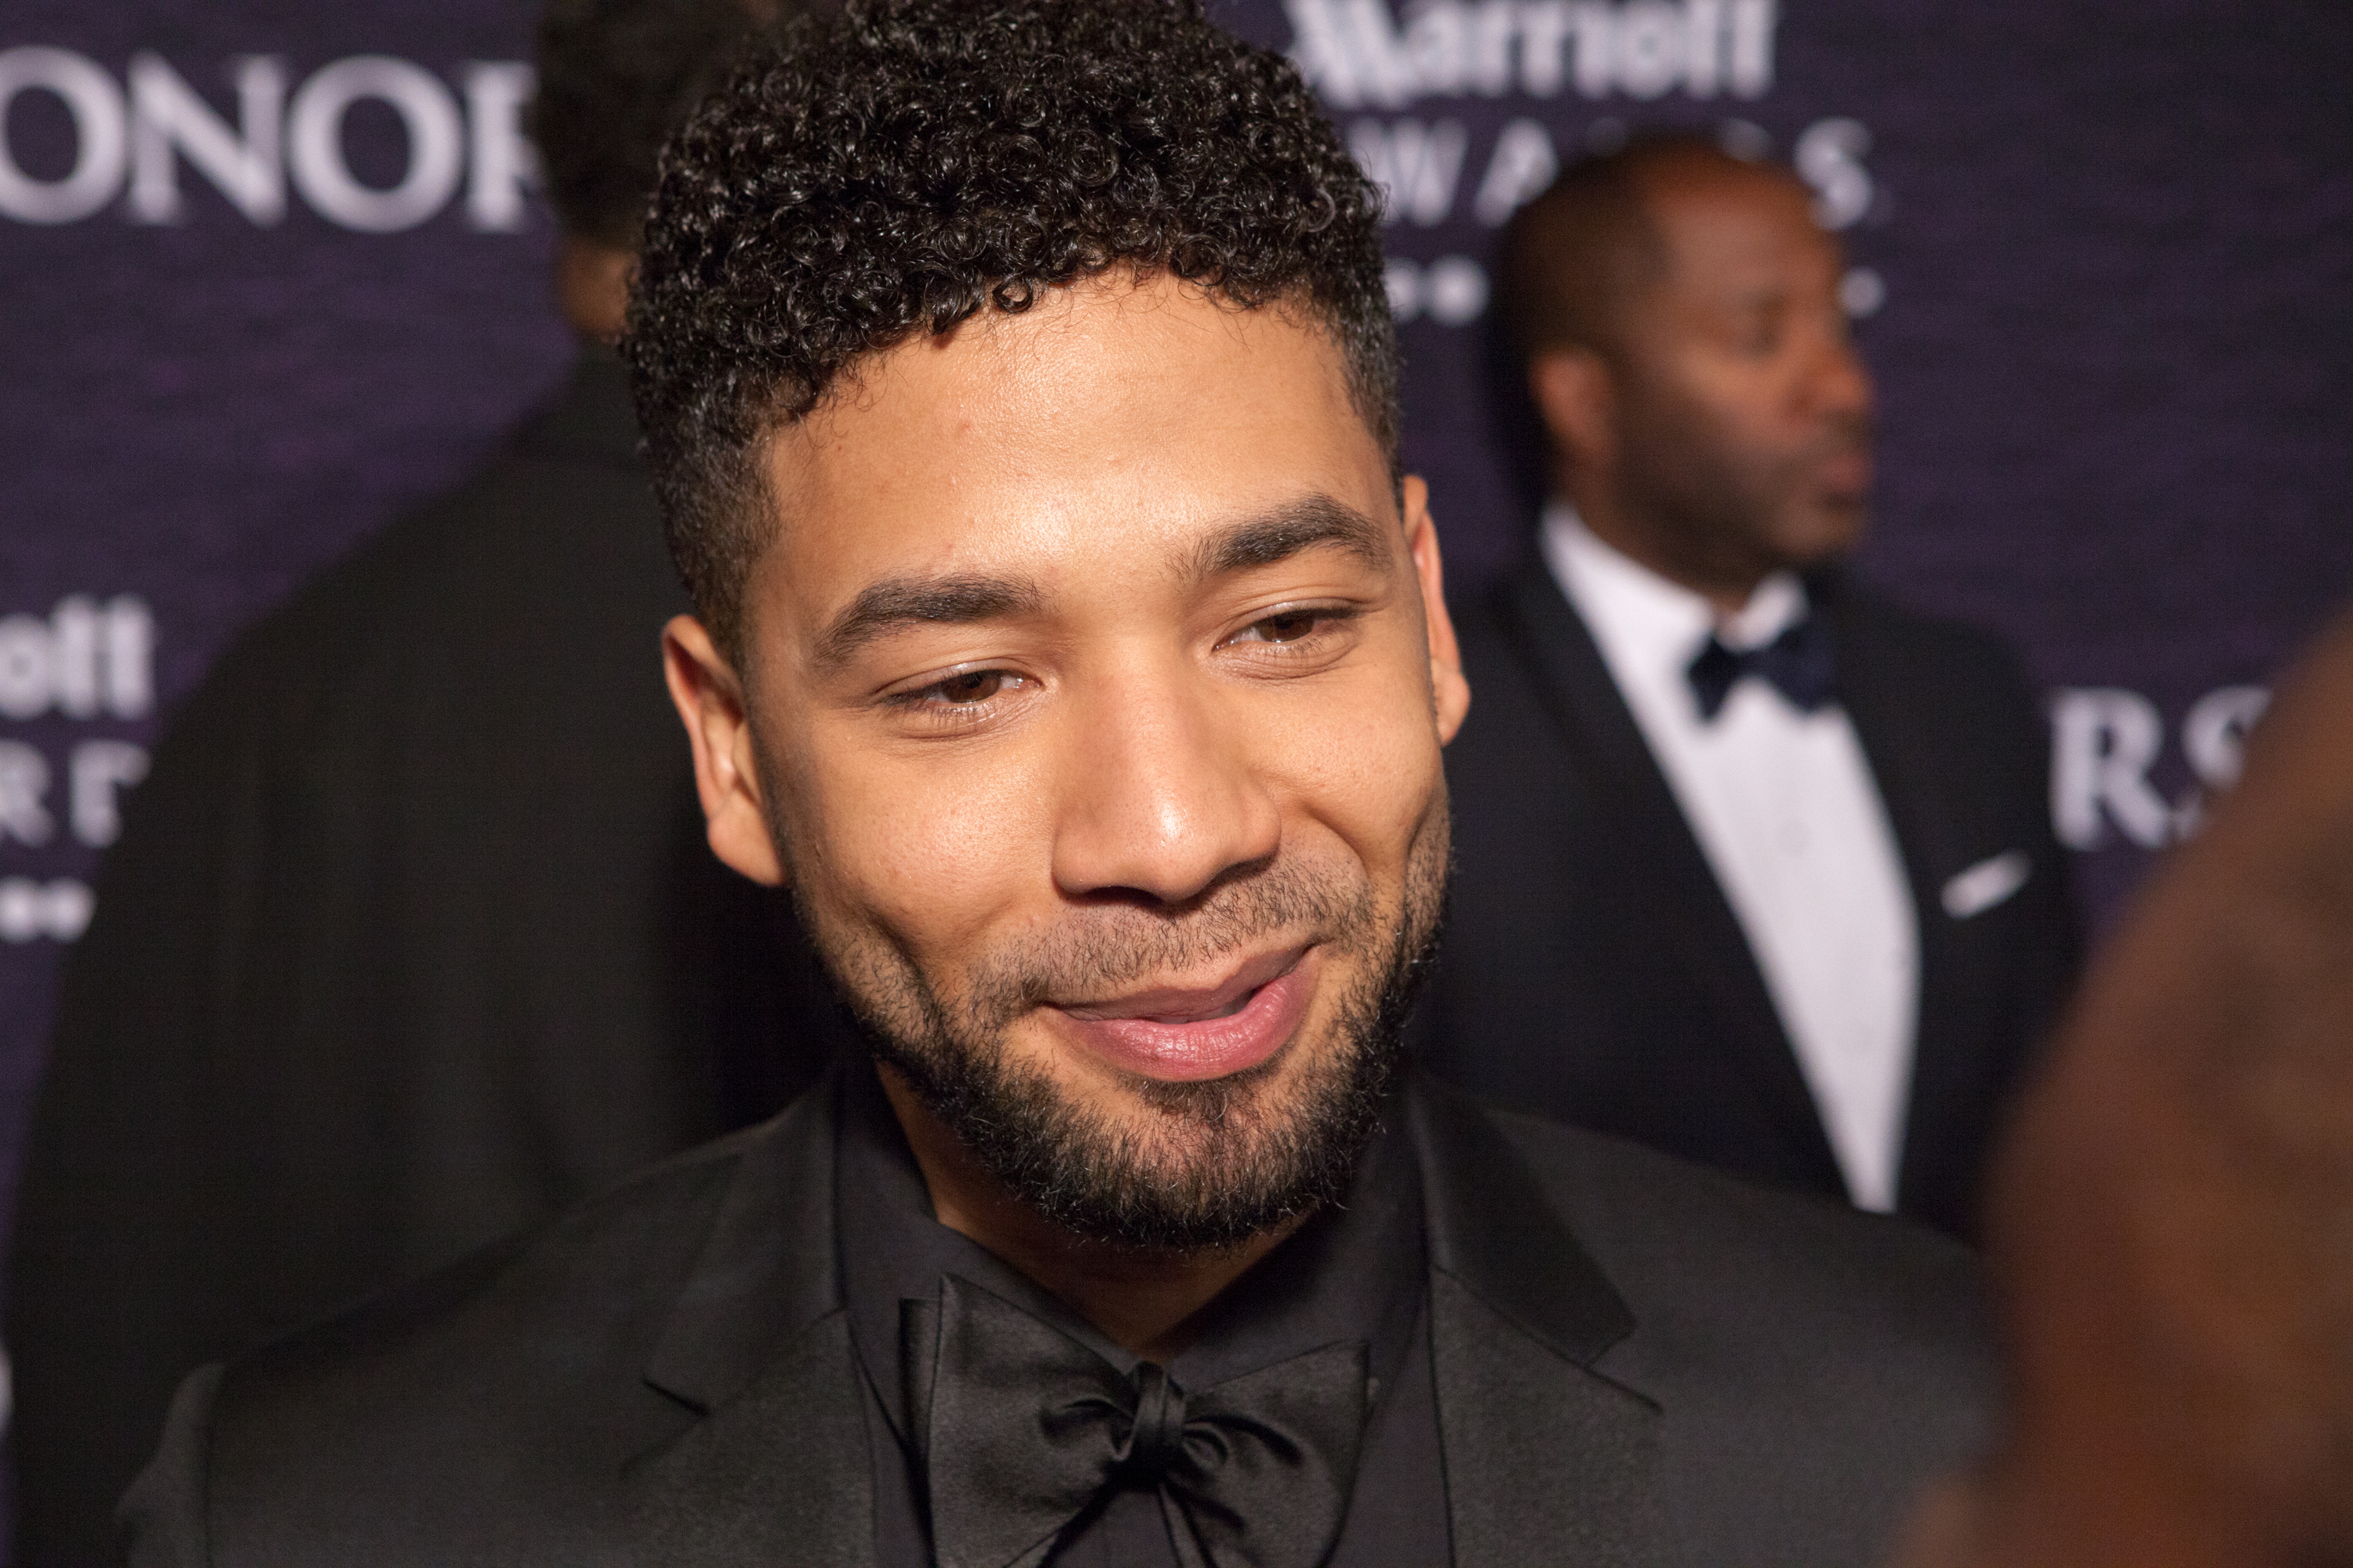 """WASHINGTON, D.C. — On Saturday, March 5 at the Warner Theater, performer and one of the stars of """"Empire"""" Jussie Smollett, on the red carpet for BET Honors.  (Photo by Cheriss May/NurPhoto)"""